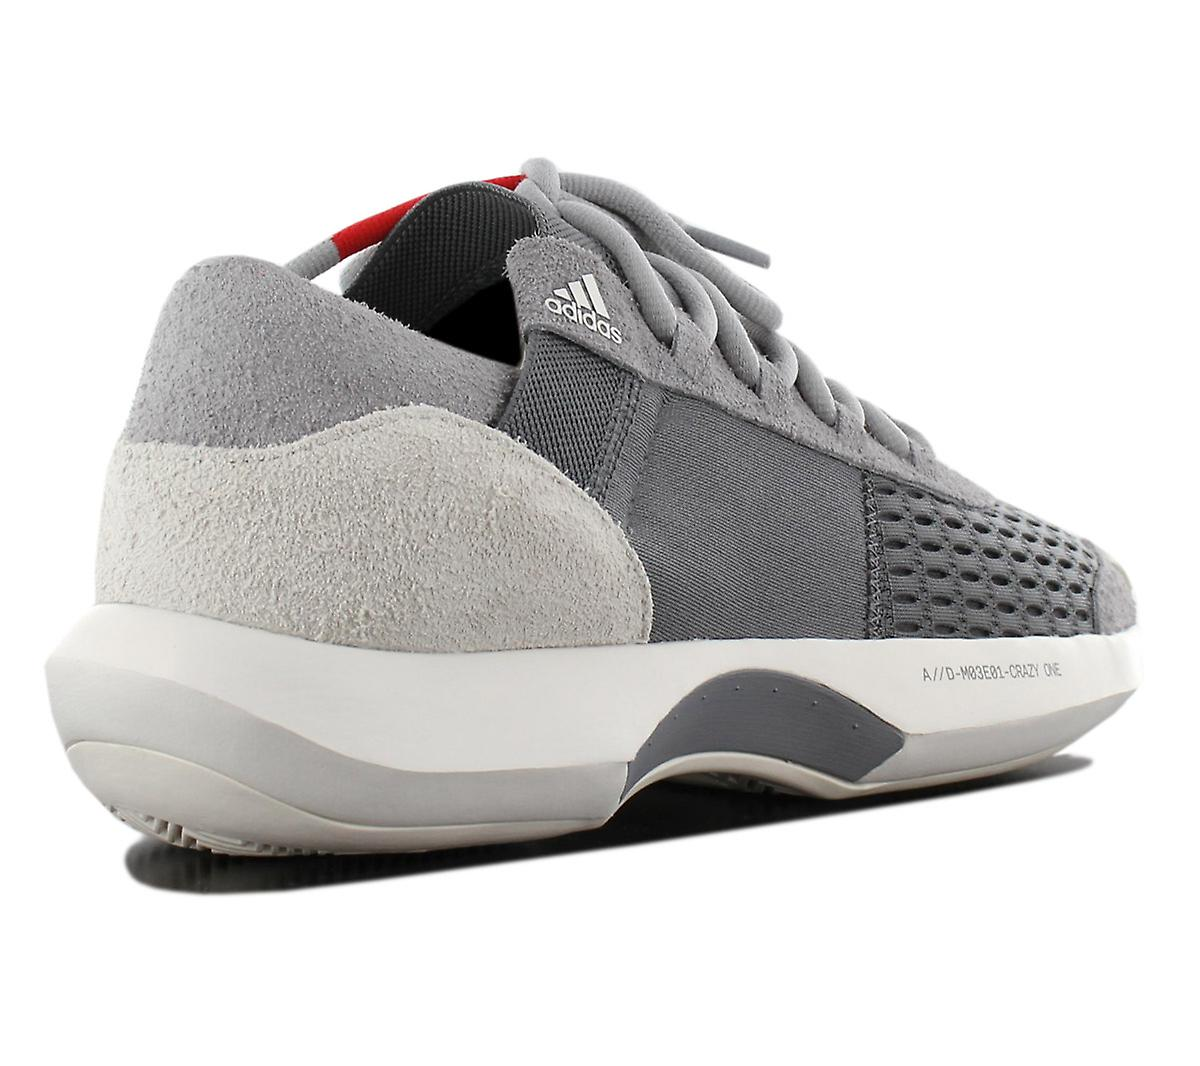 adidas Crazy 1 A/ /D CQ1868 Chaussures Grises Chaussures Chaussures